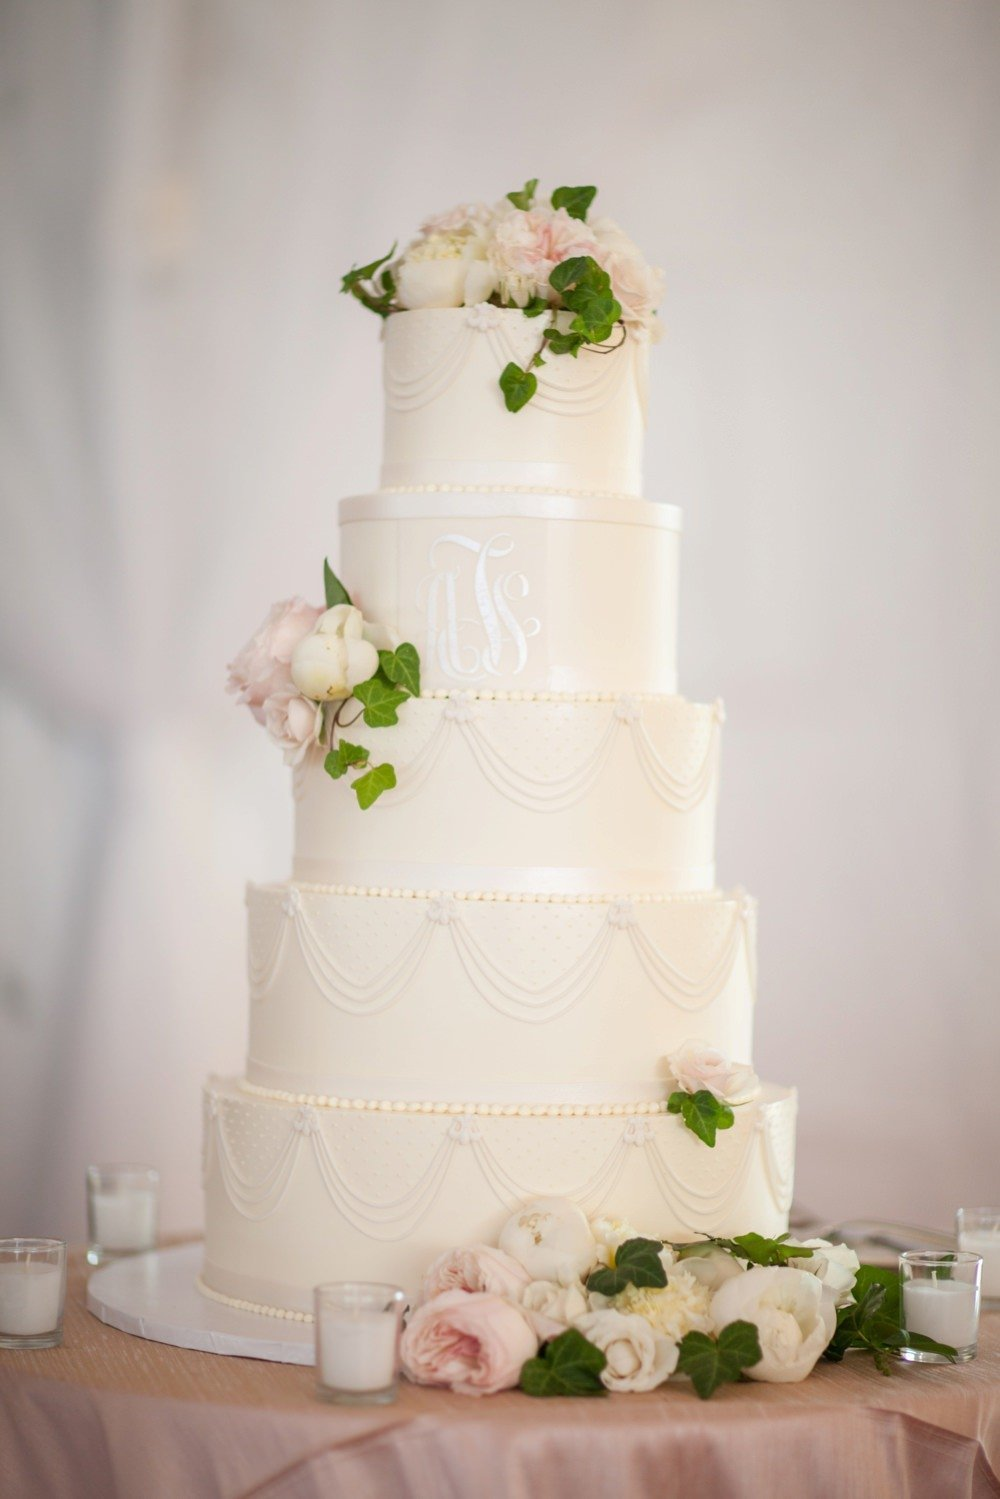 Classic white fondant 5 tier wedding cake for wedding at the Eisenhower House in Newport, RI